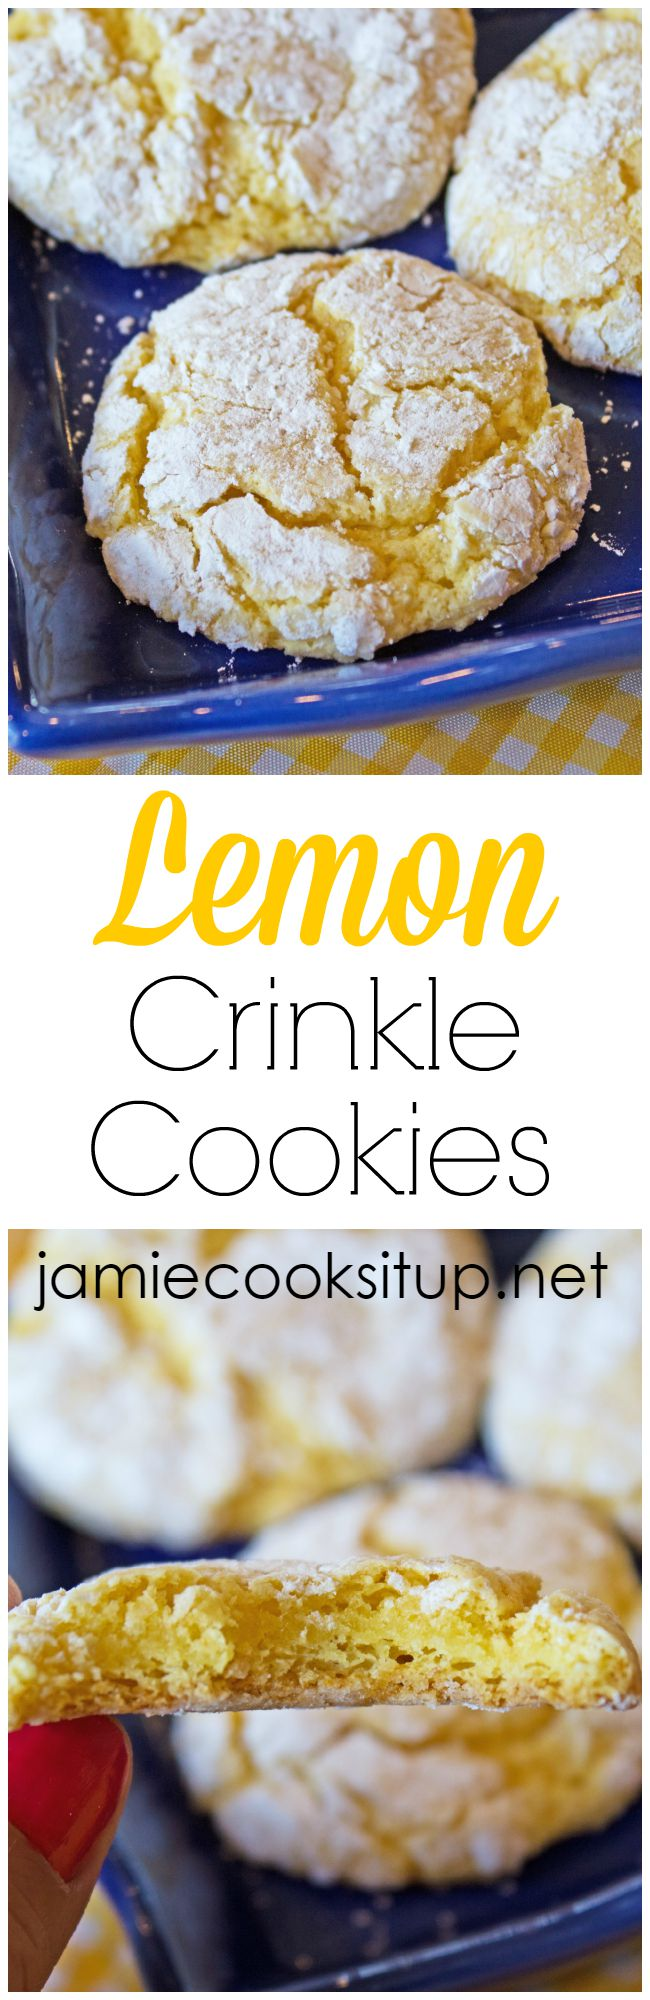 Lemon Crinkle Cookies from Jamie Cooks It Up